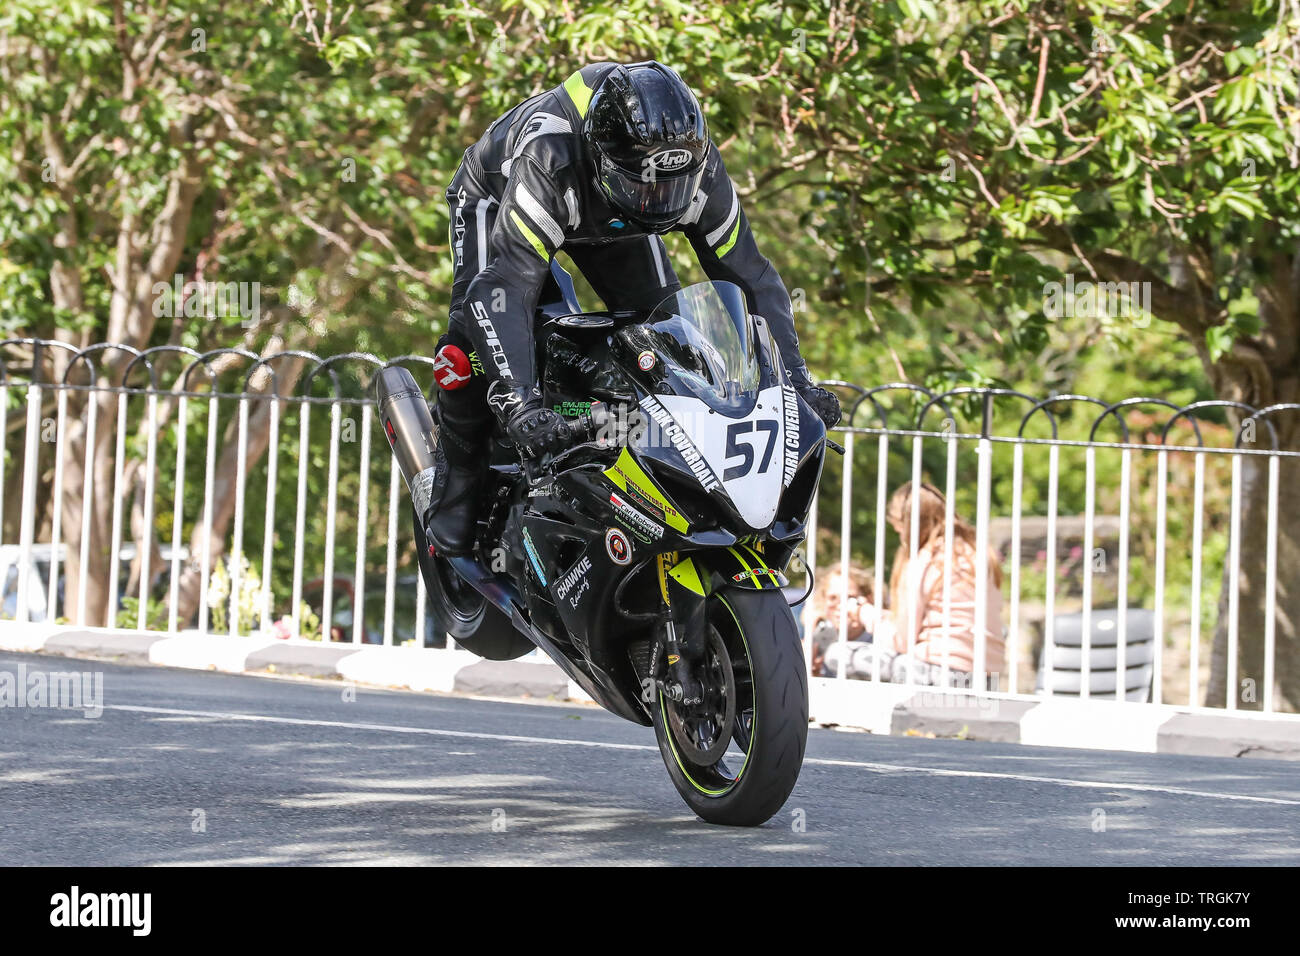 James Chawke (57) - Chawkie Racing Supporters Club GSXR 1000 in action in the RST Superbike class Race at the 2019 Isle of Man TT (Tourist Trophy) Rac - Stock Image